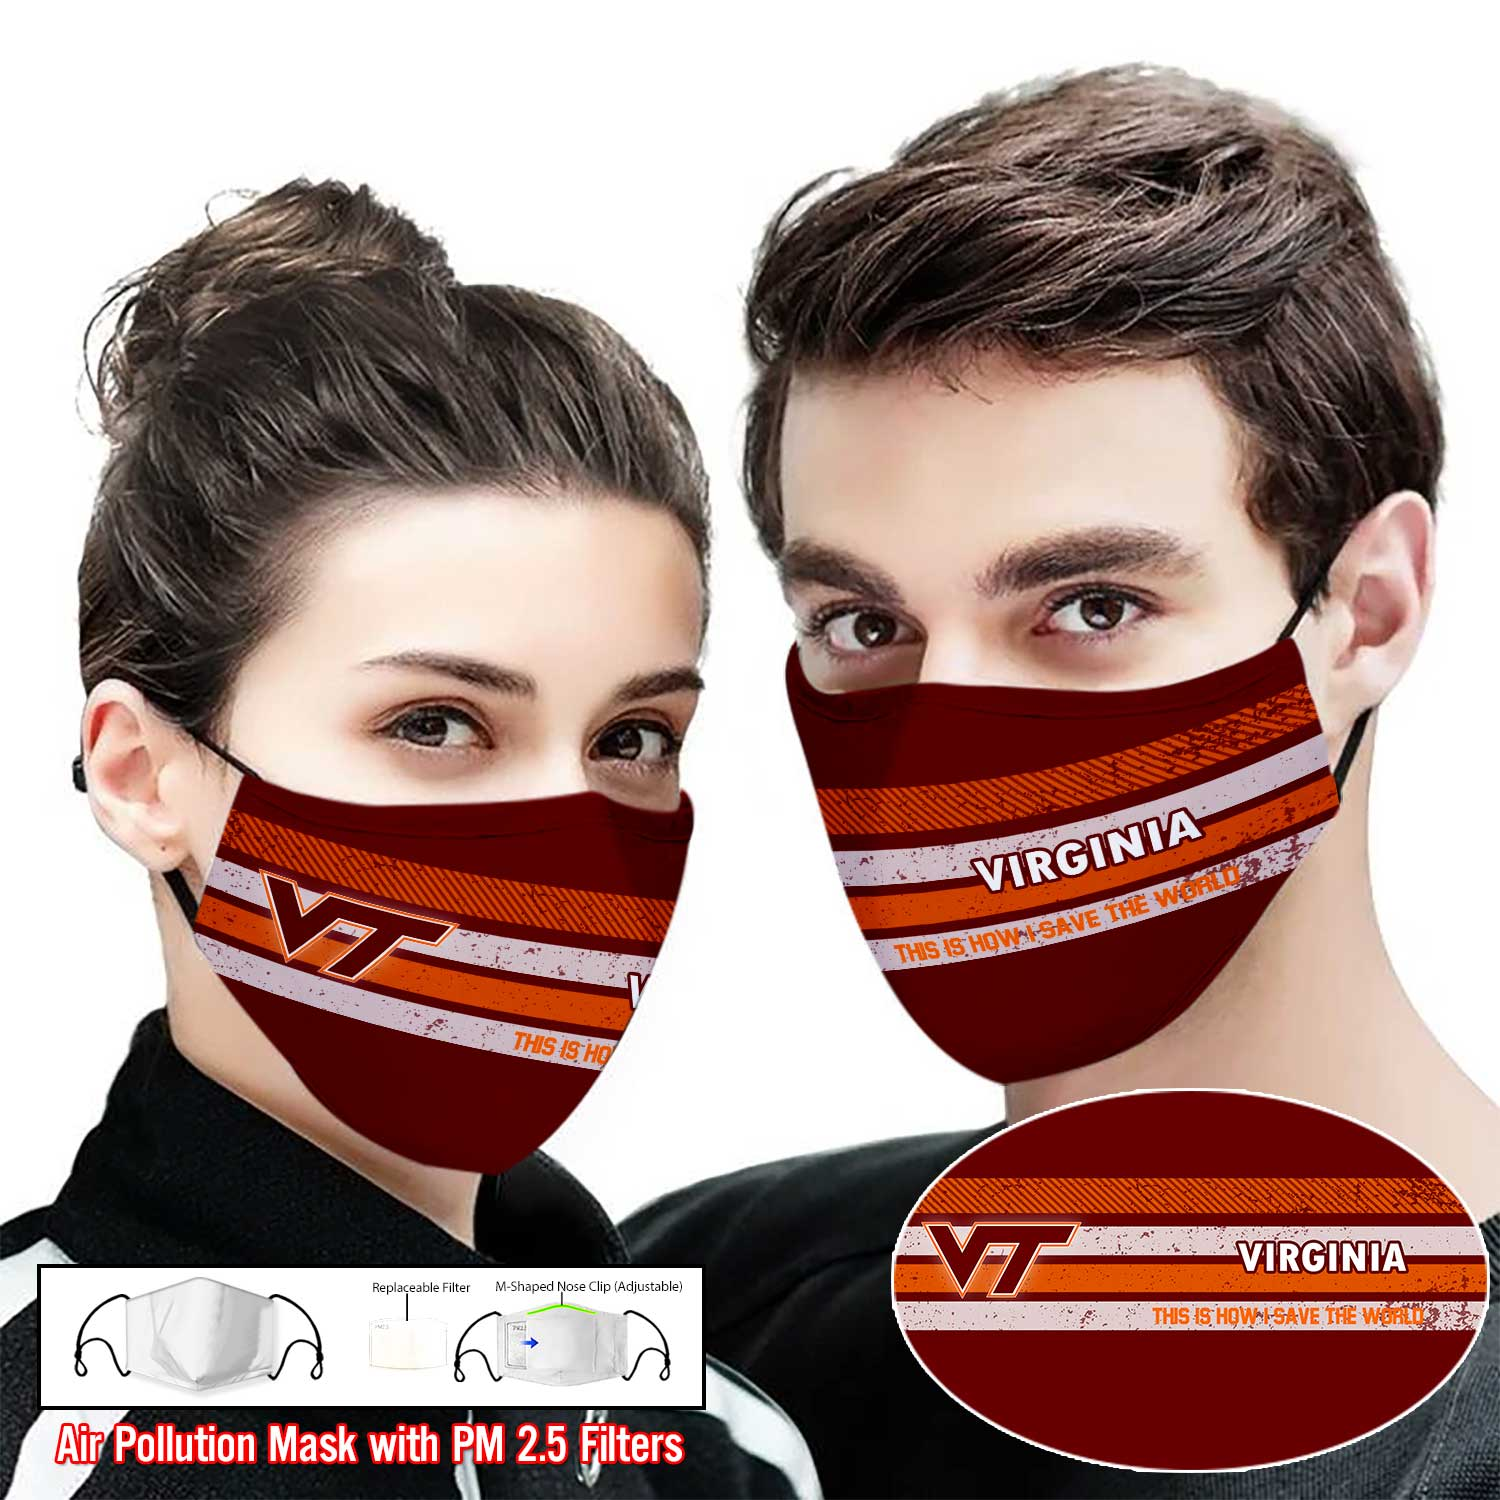 Virginia tech hokies this is how i save the world face mask 1